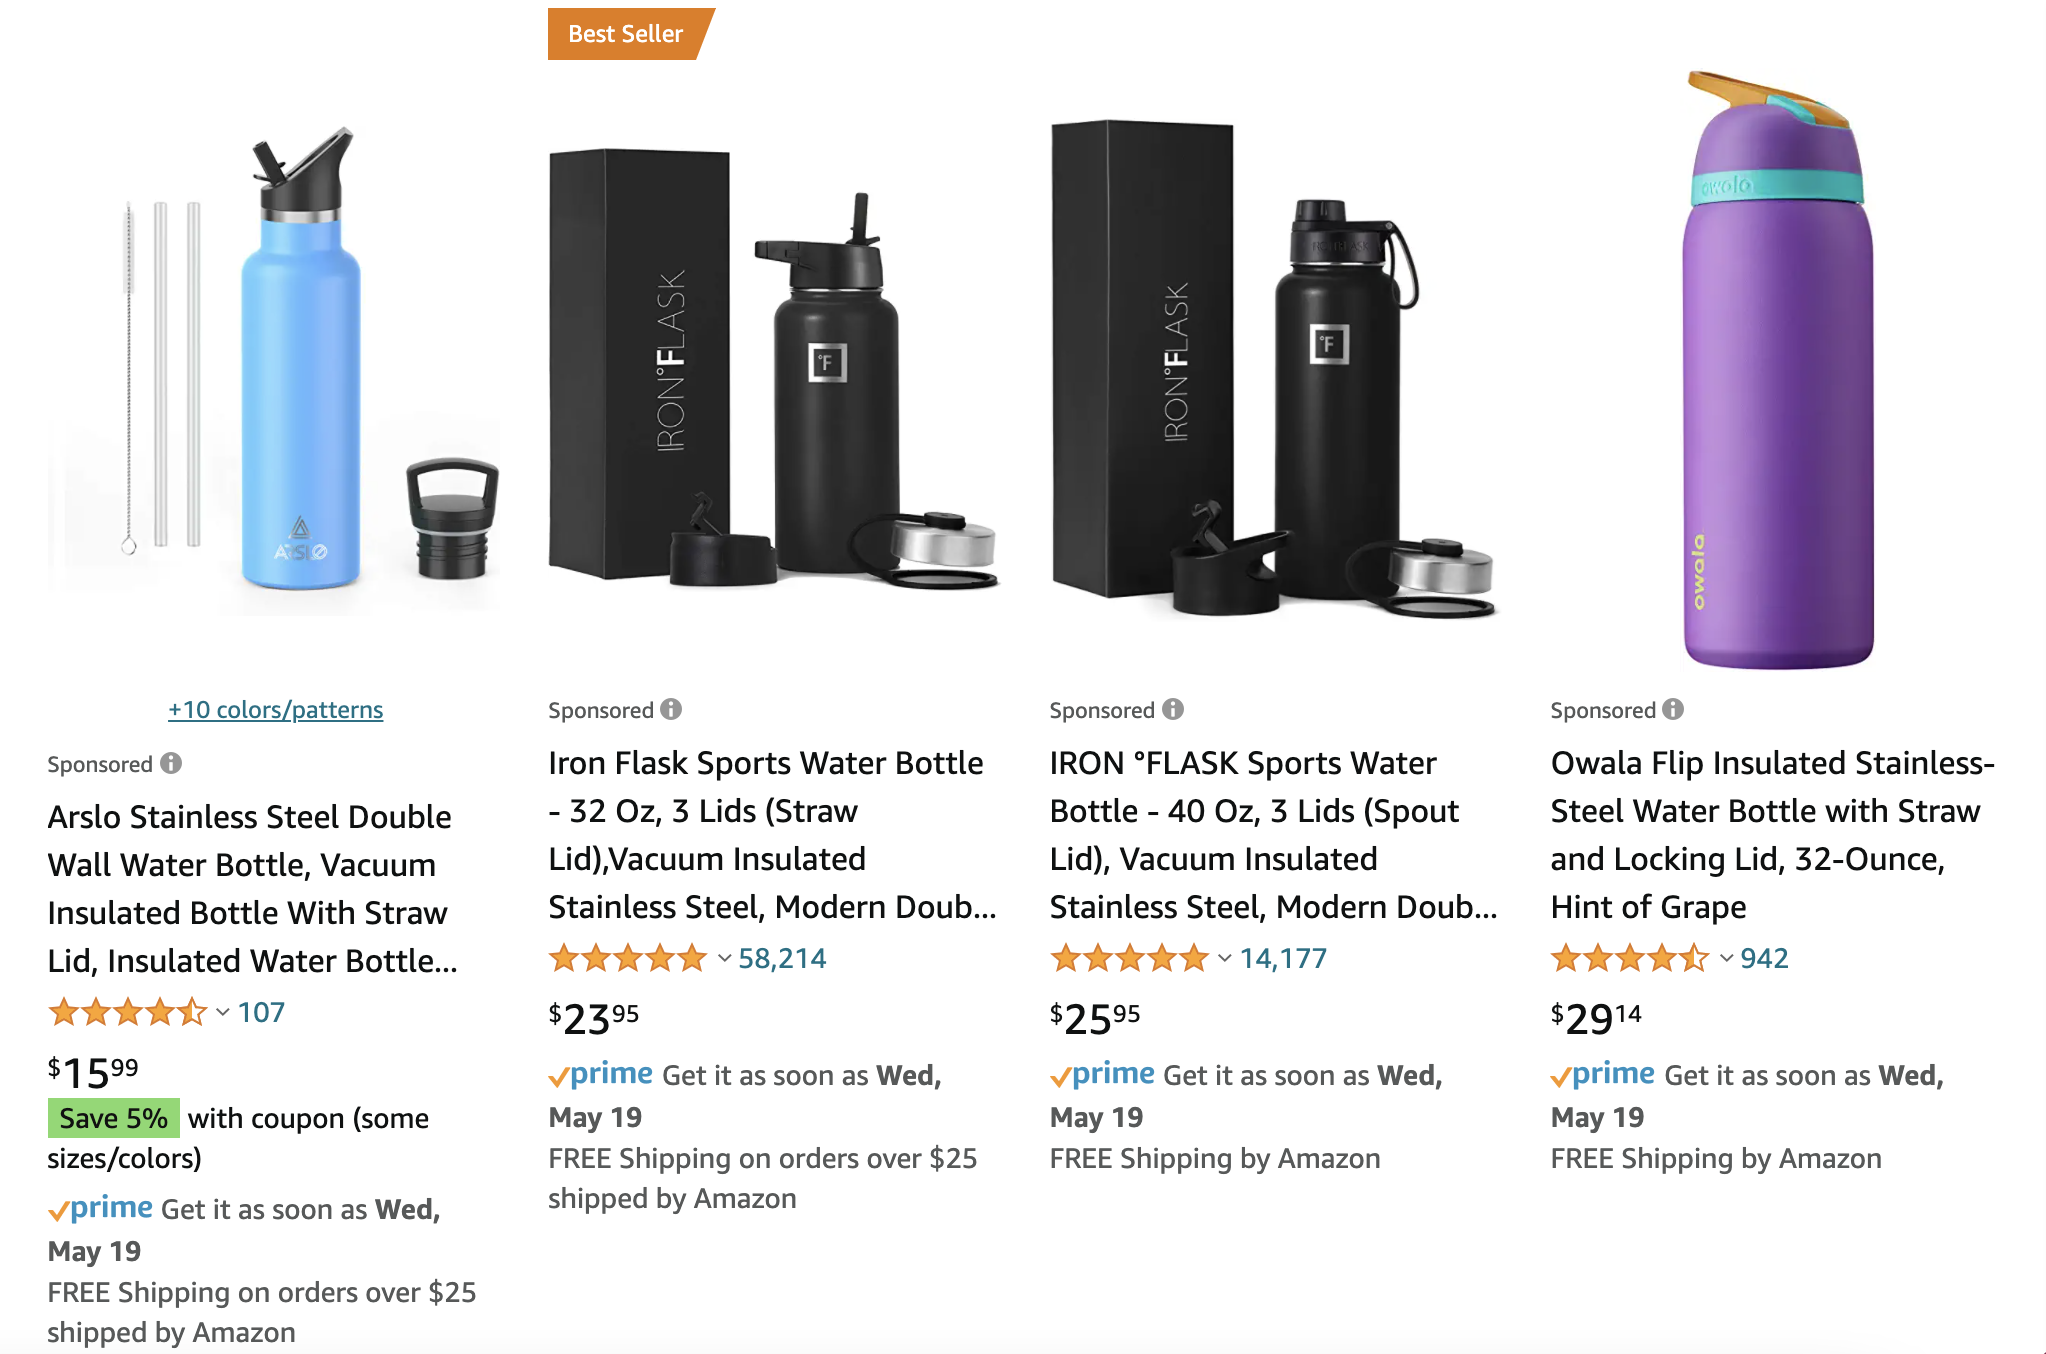 Amazon PPC ads: example of Amazon sponsored listings for insulated water bottles